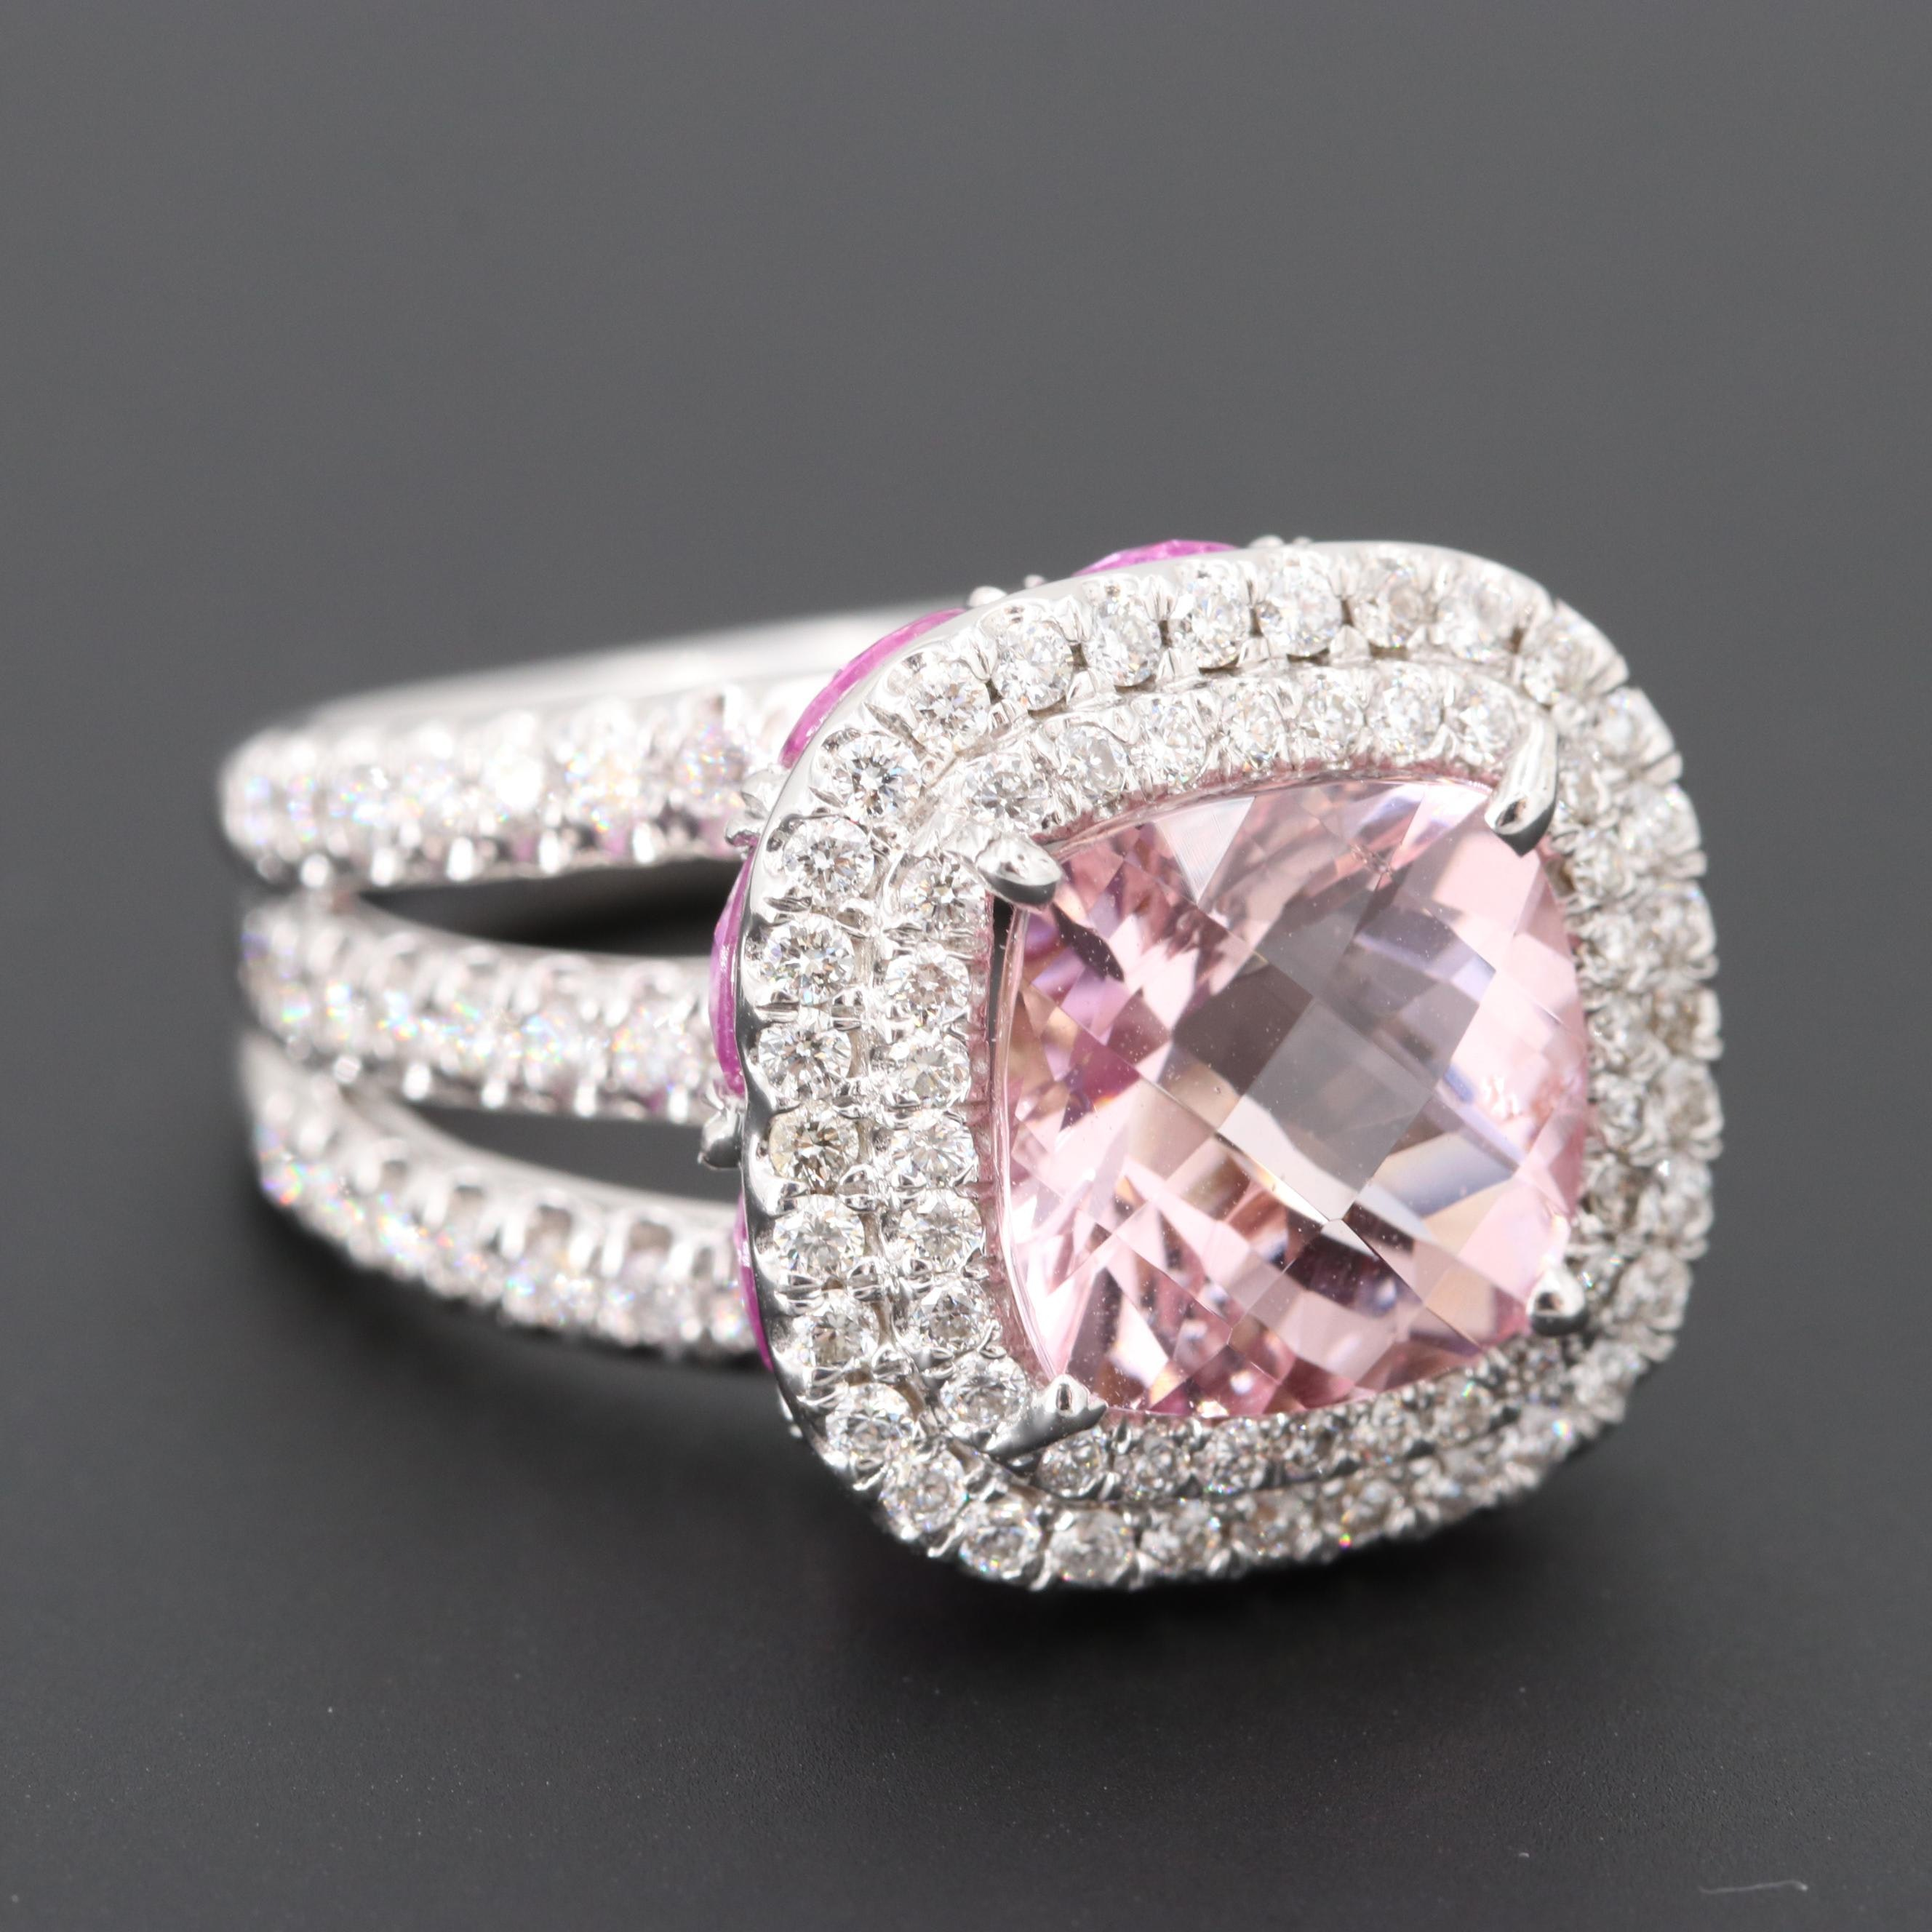 Charles Krypell 18K Gold Morganite, Pink Sapphire and 1.06 CTW Diamond Ring